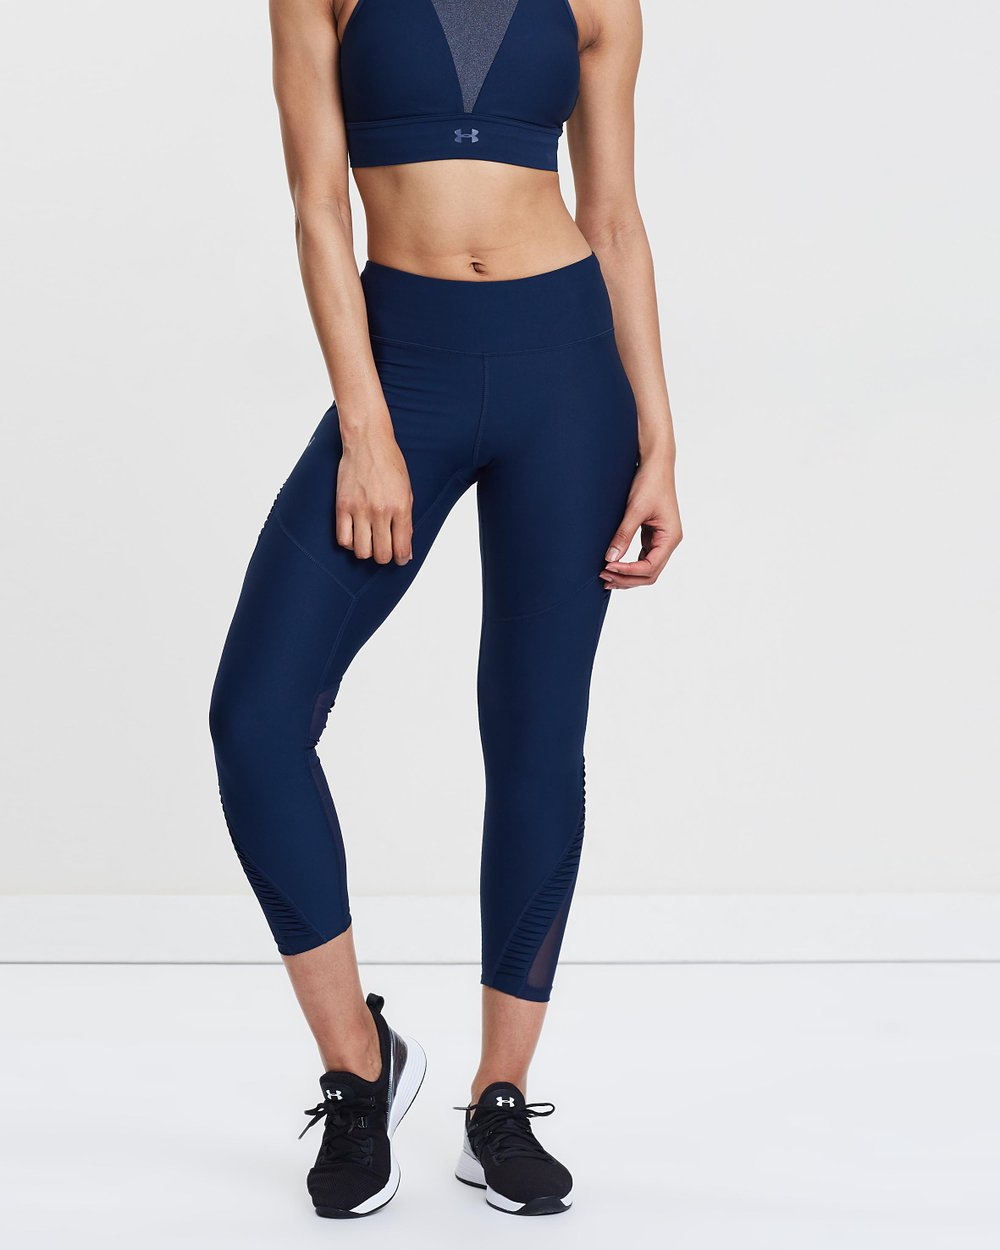 616f3fedbcef0 Vanish Pleated Ankle Crop Tights by Under Armour Online | THE ICONIC |  Australia